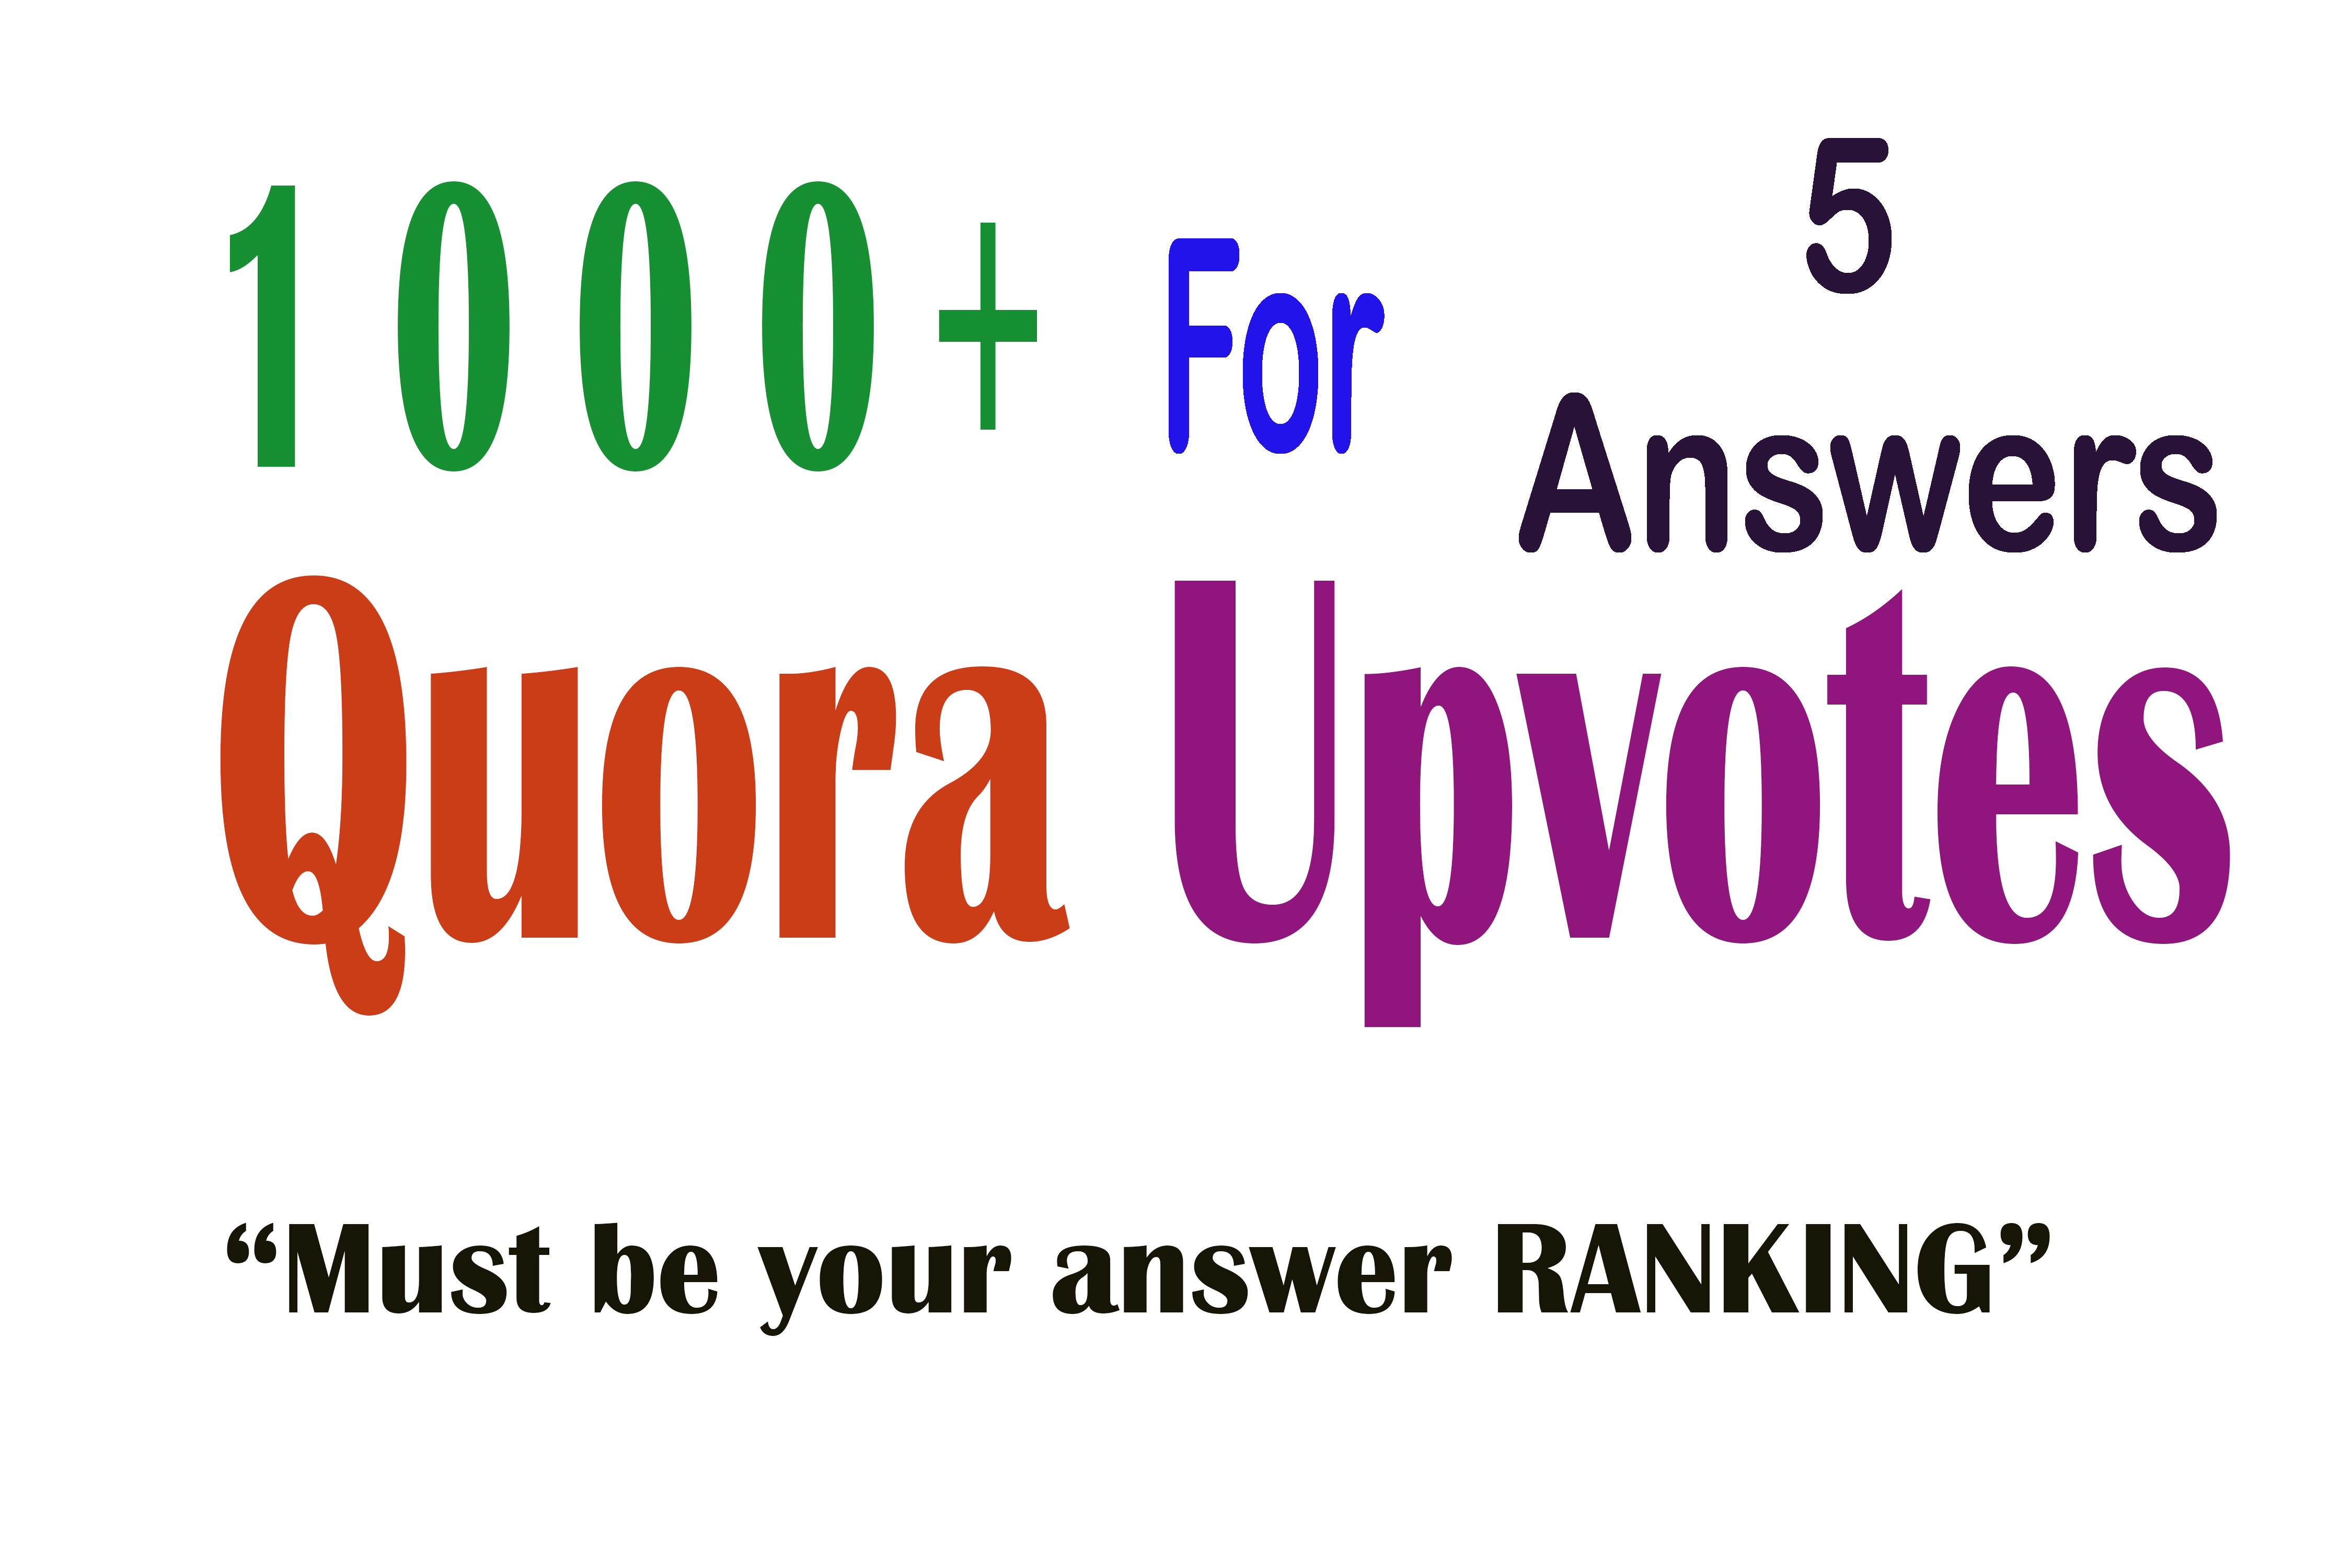 1000+ Quora Upvotes for your 5 Answer